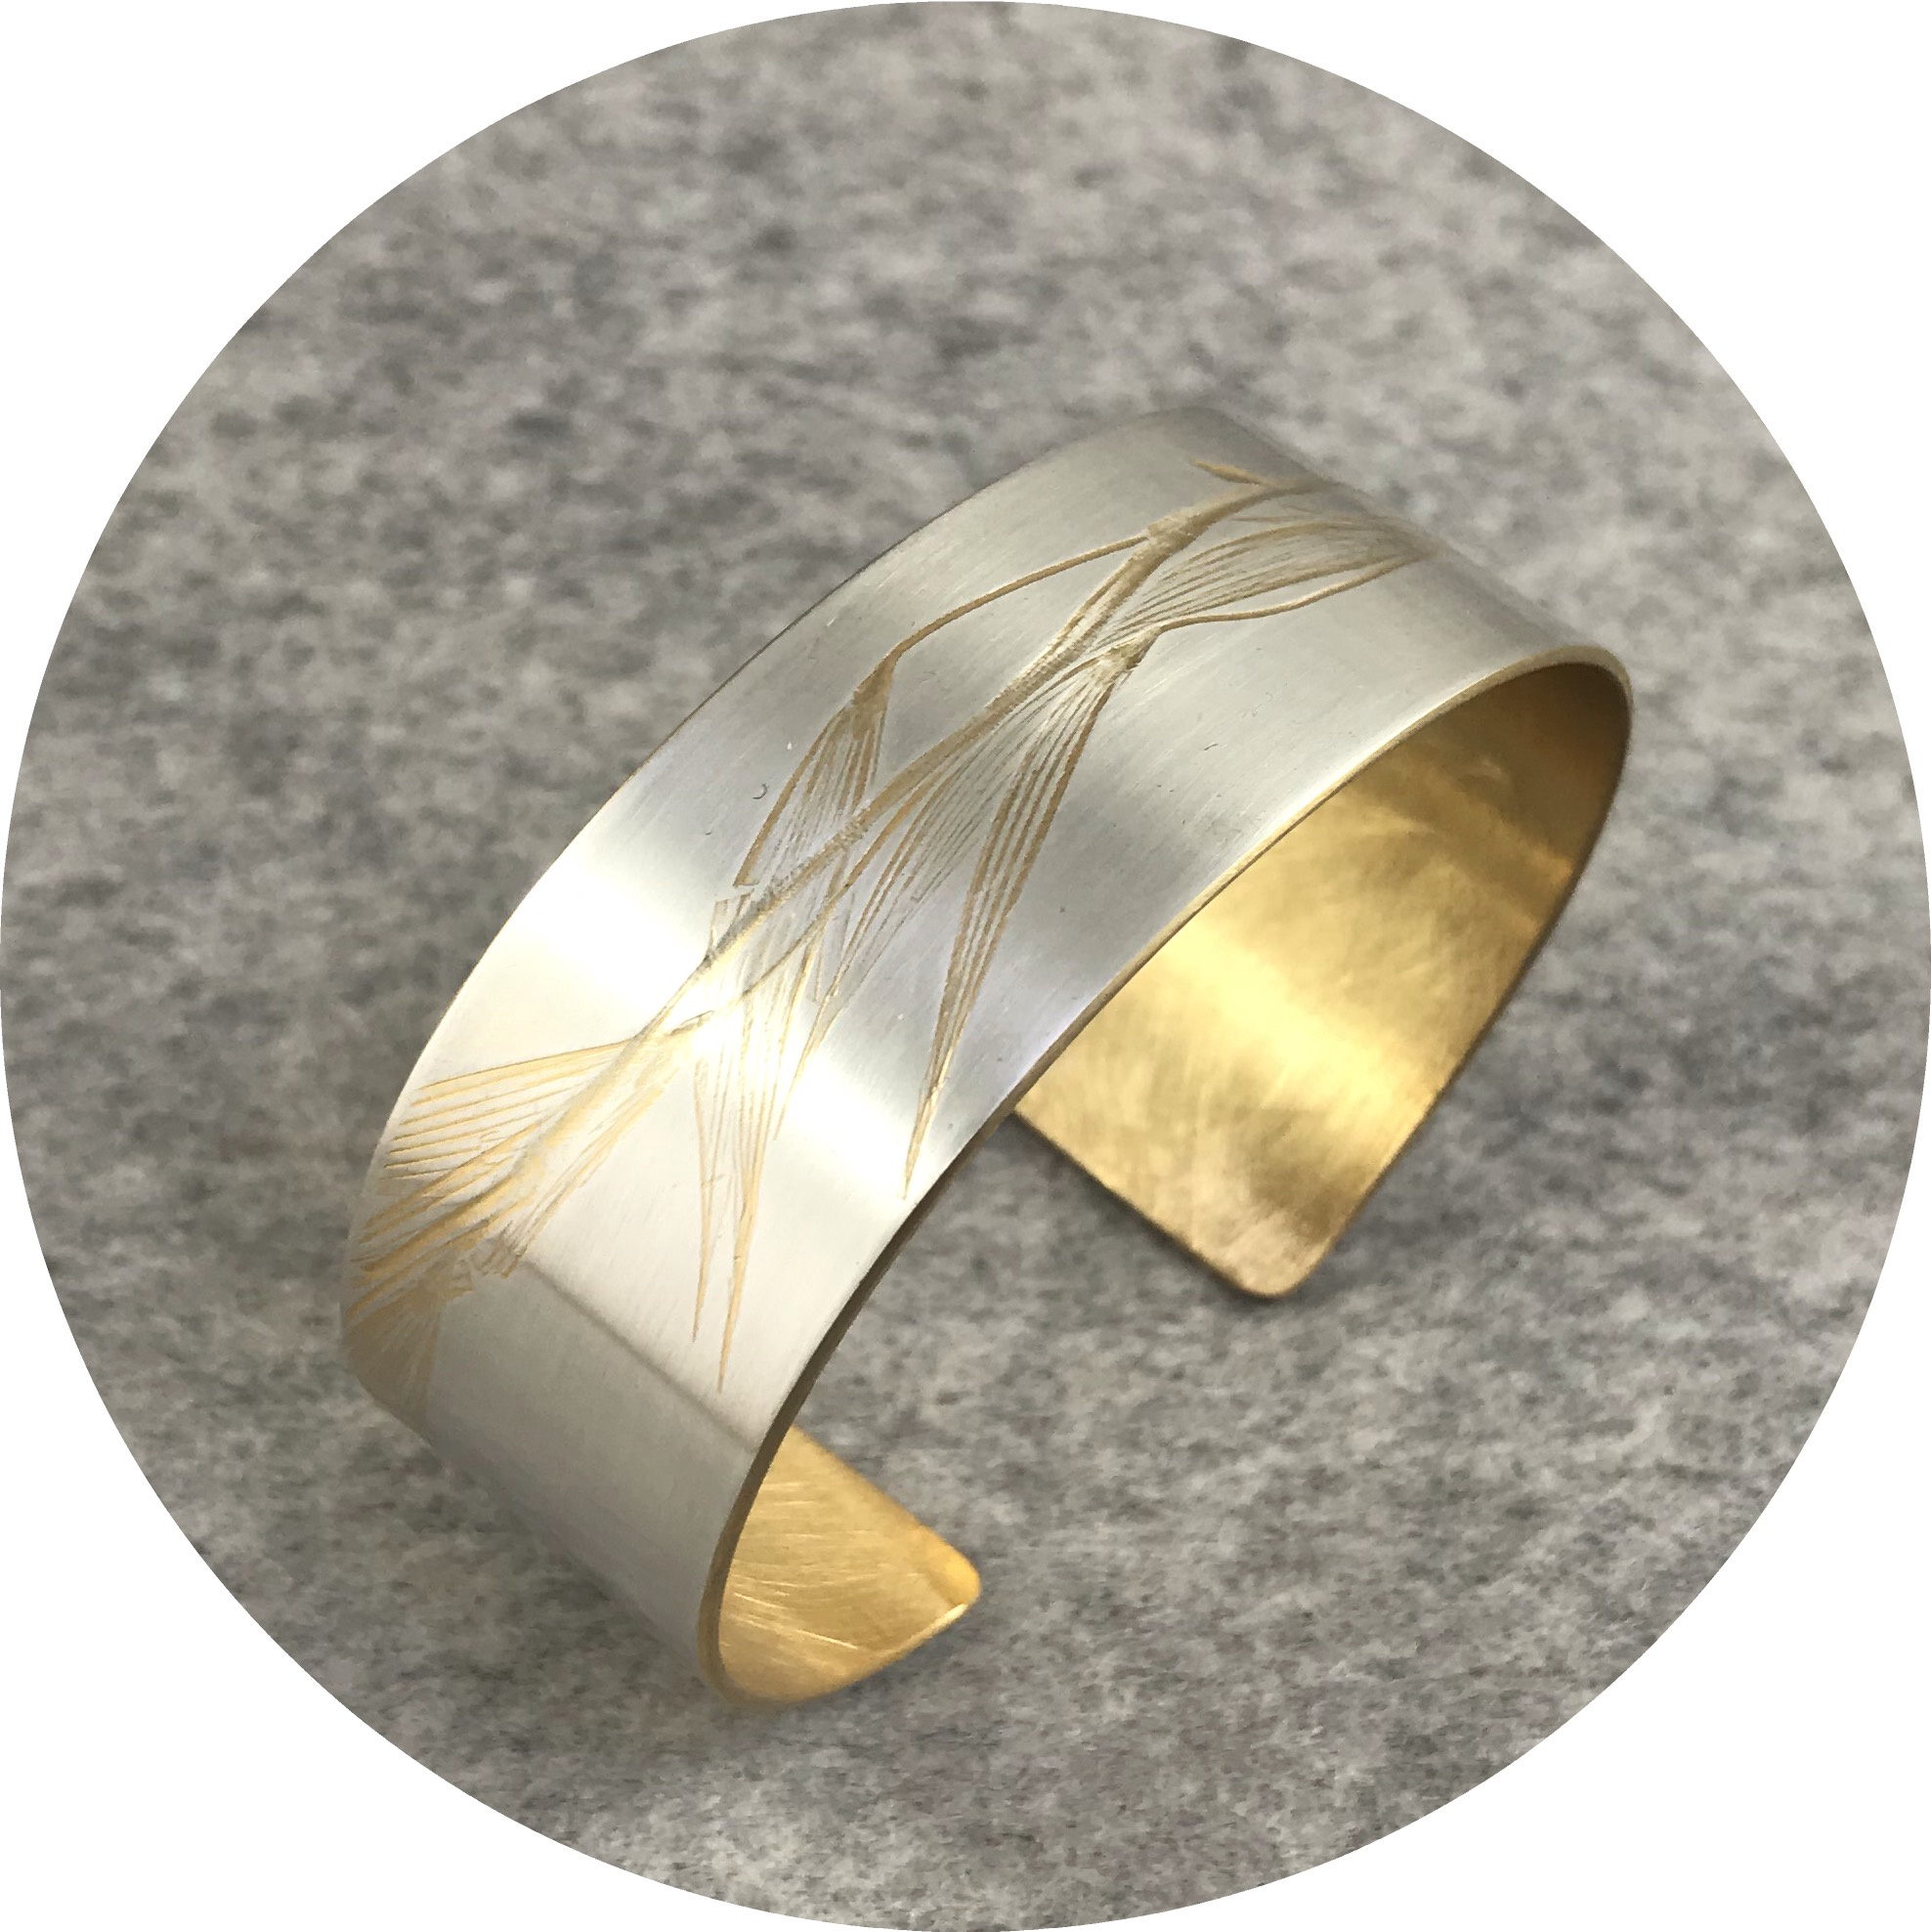 Claire Taylor - 'Yellow Plant Cuff', 925 silver, yellow gold plate